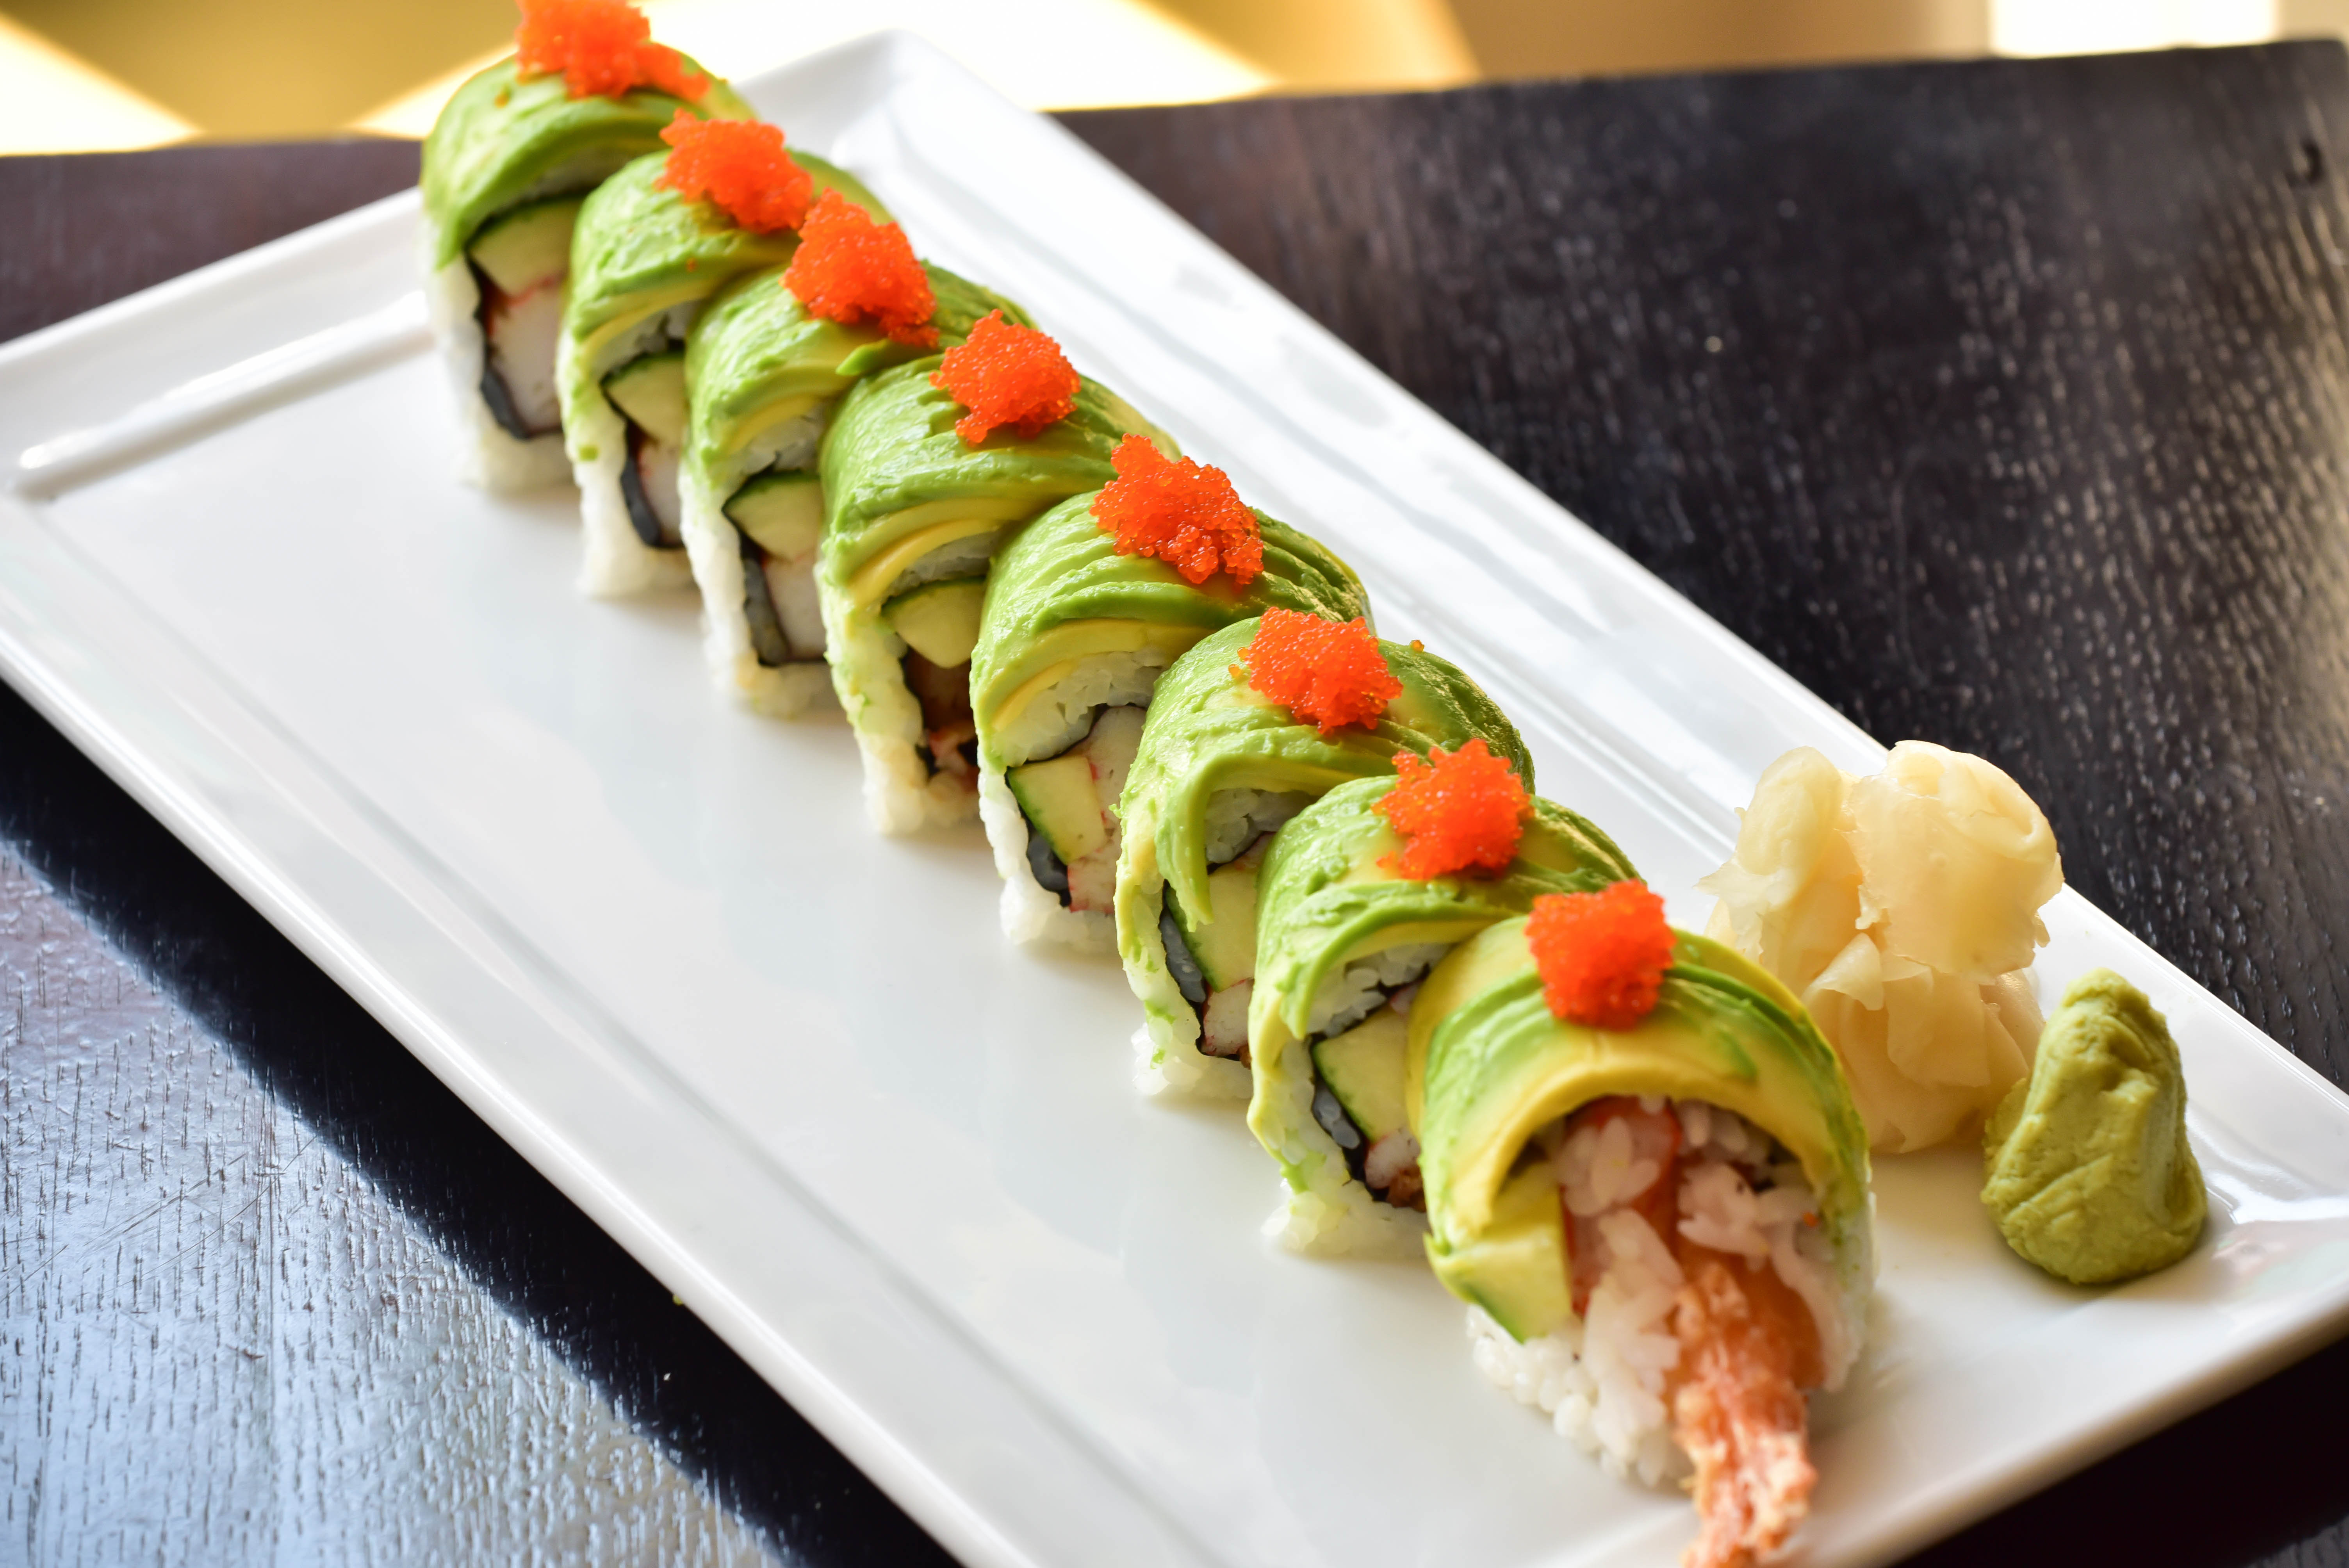 Dragon roll 12.00